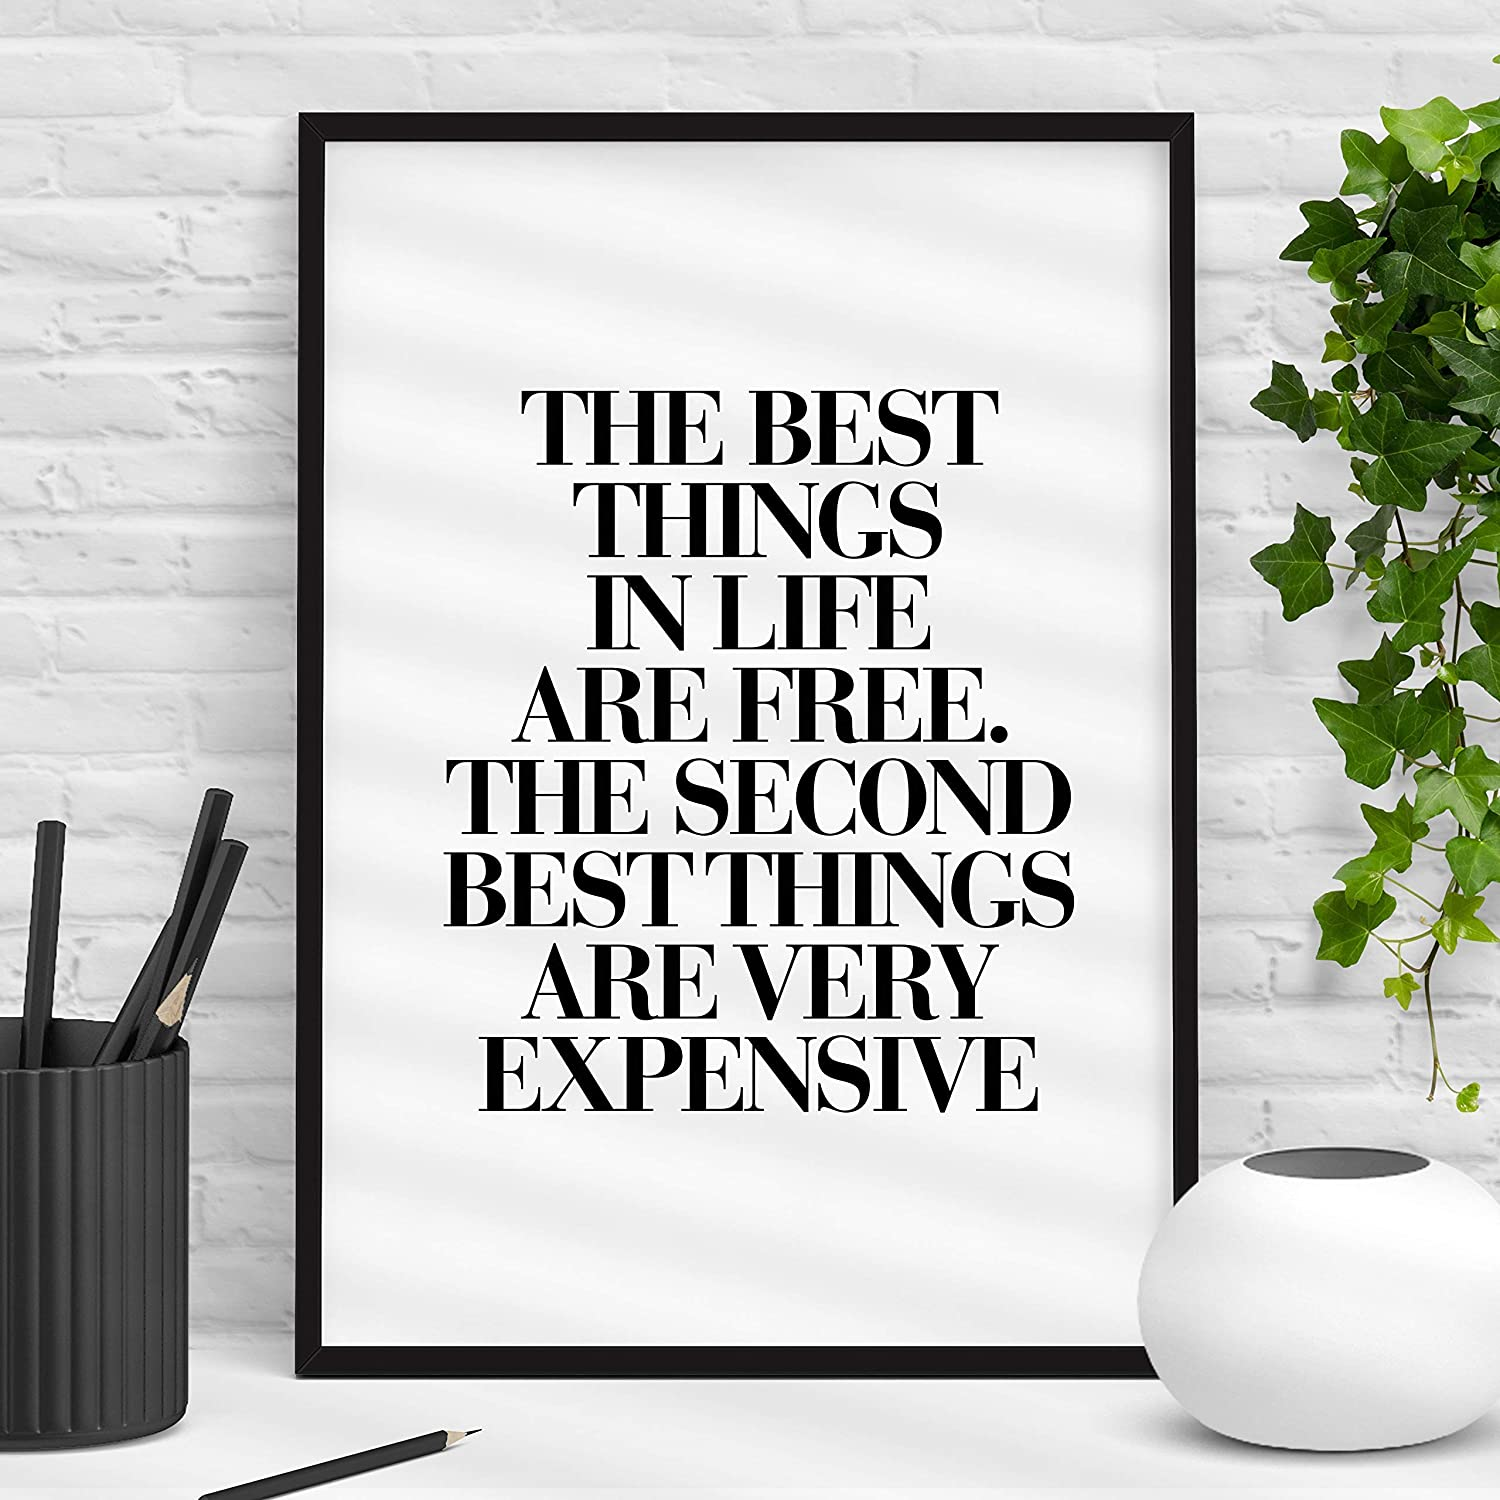 Amazon.com: The Best Things in Life Are Free The Second Best Things are  Very Expensive Coco Chanel Quote Typography Poster Wall Decor Motivational  Print Inspirational Poster Home Decor: Handmade